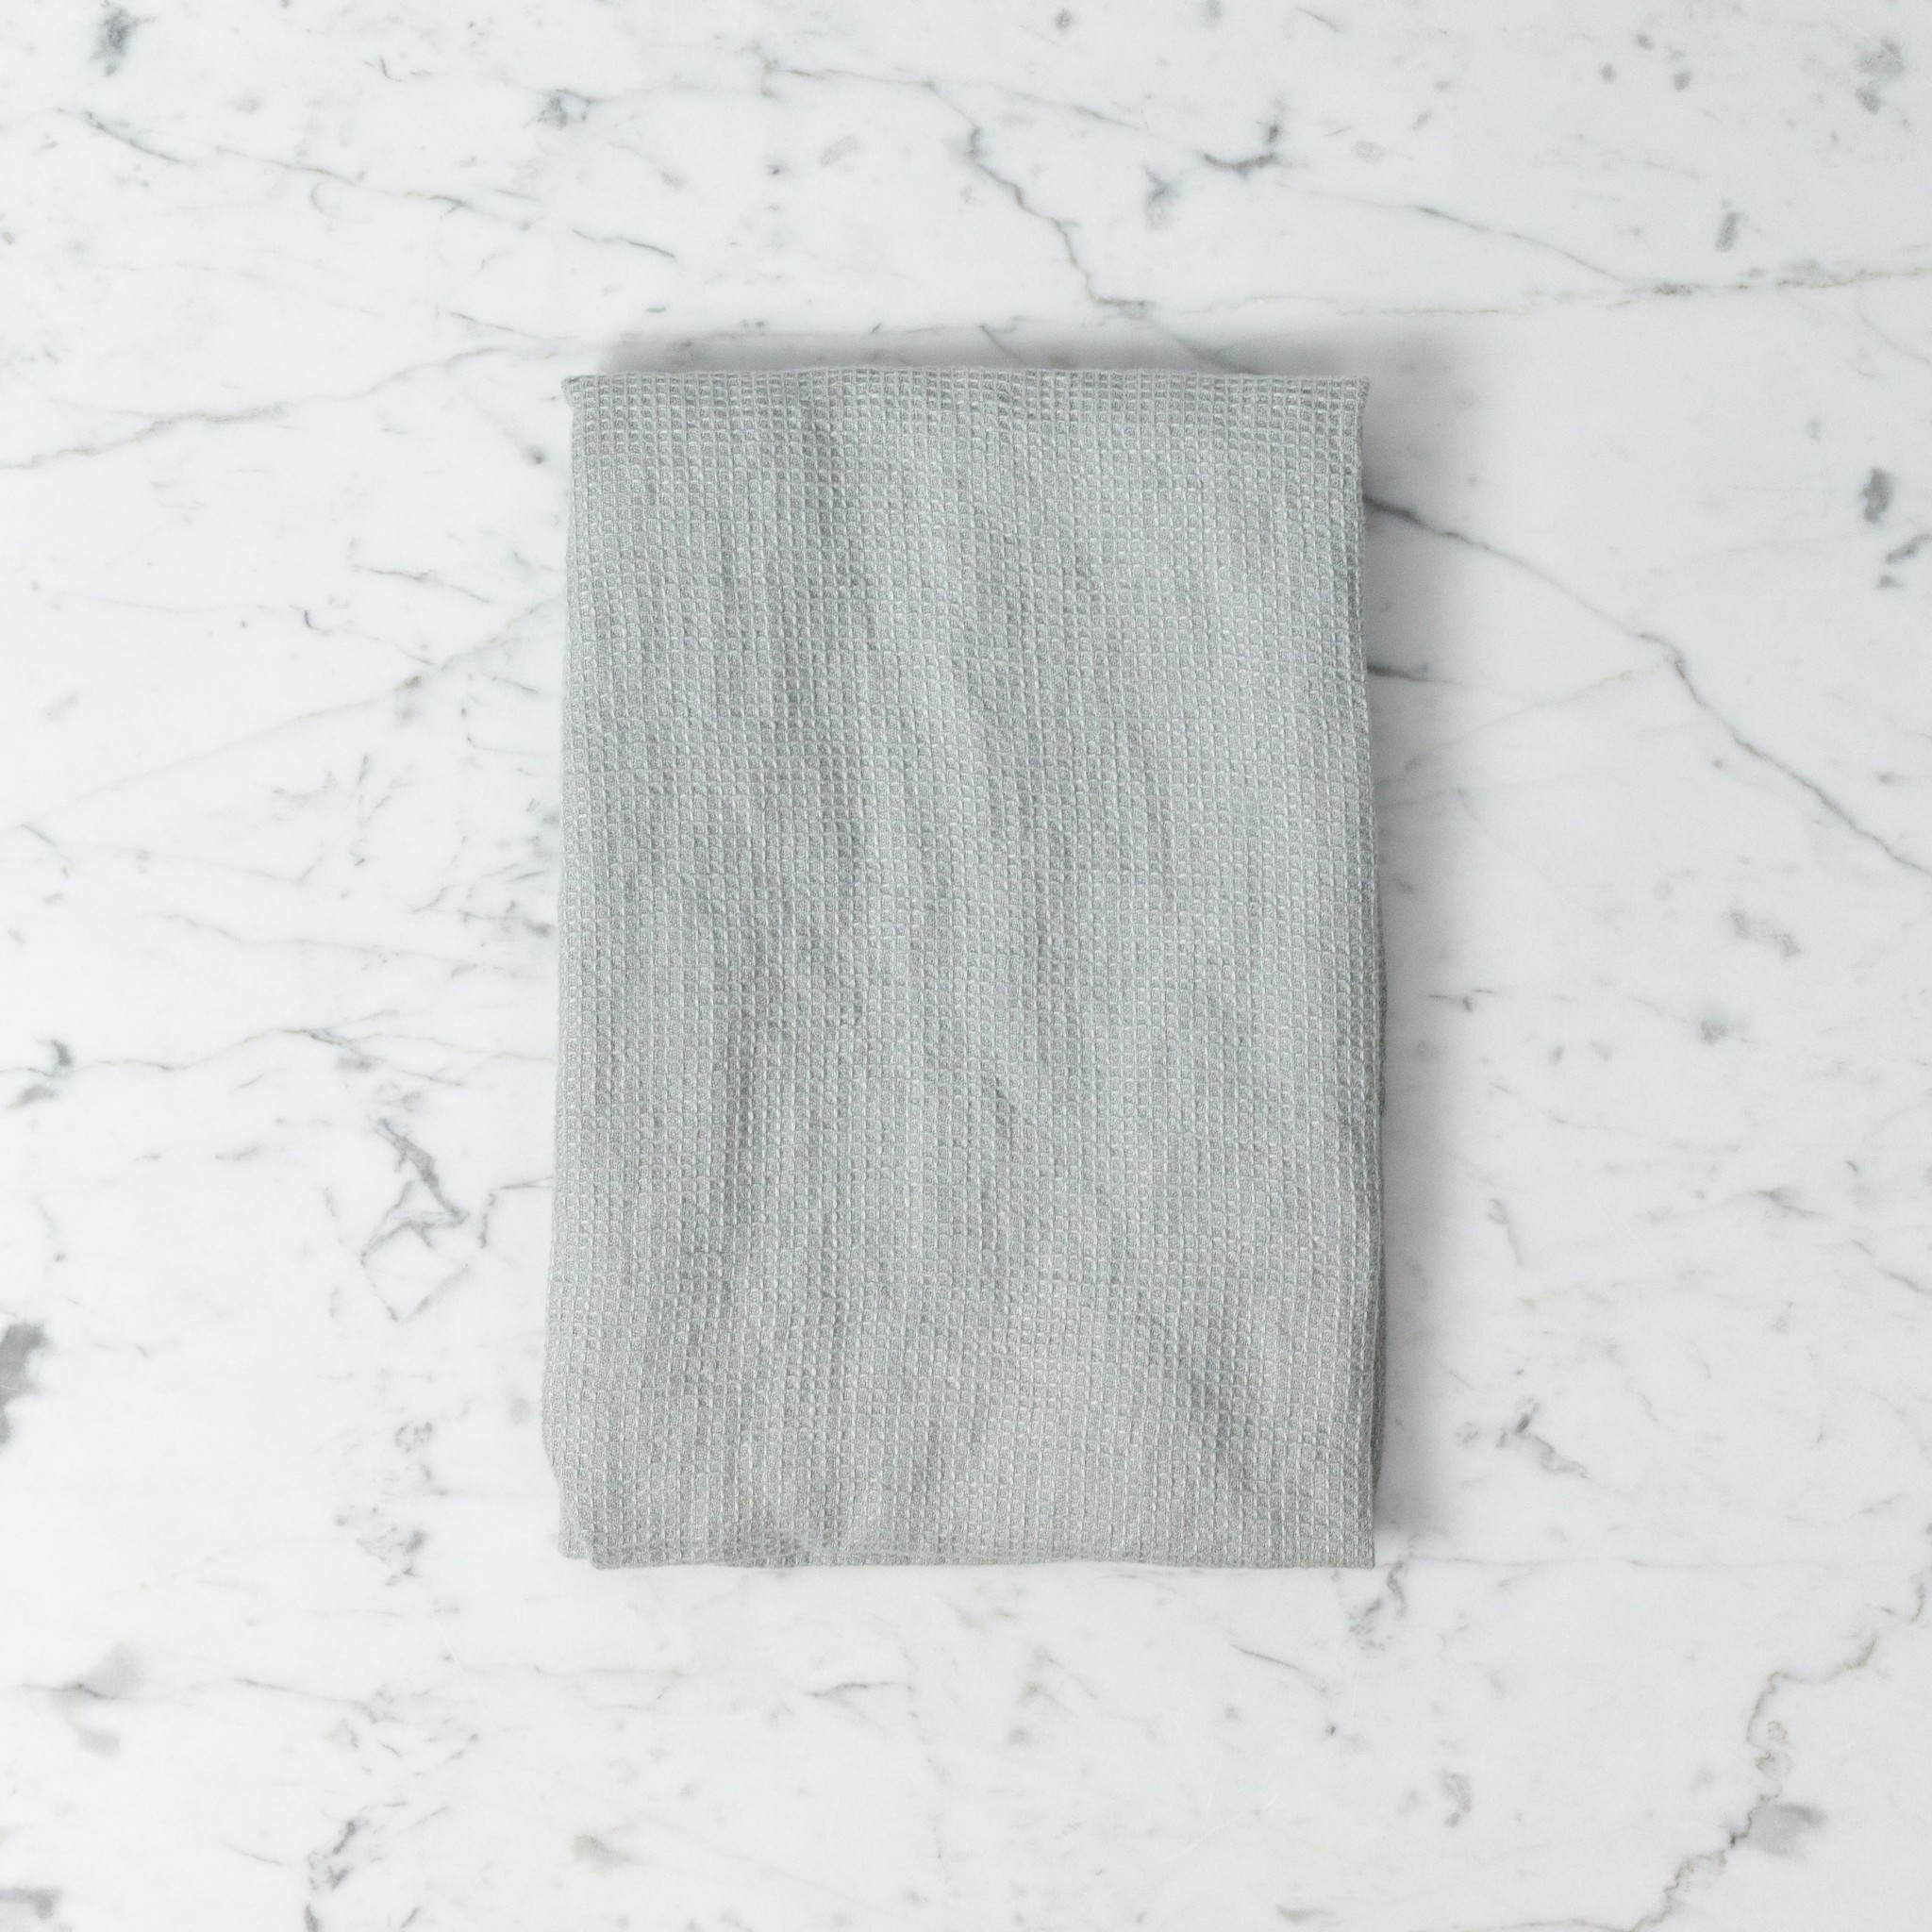 Light Washed French Linen Waffle Mini Spa or Hand Towel - Soft Cloud Grey - 24 x 40""